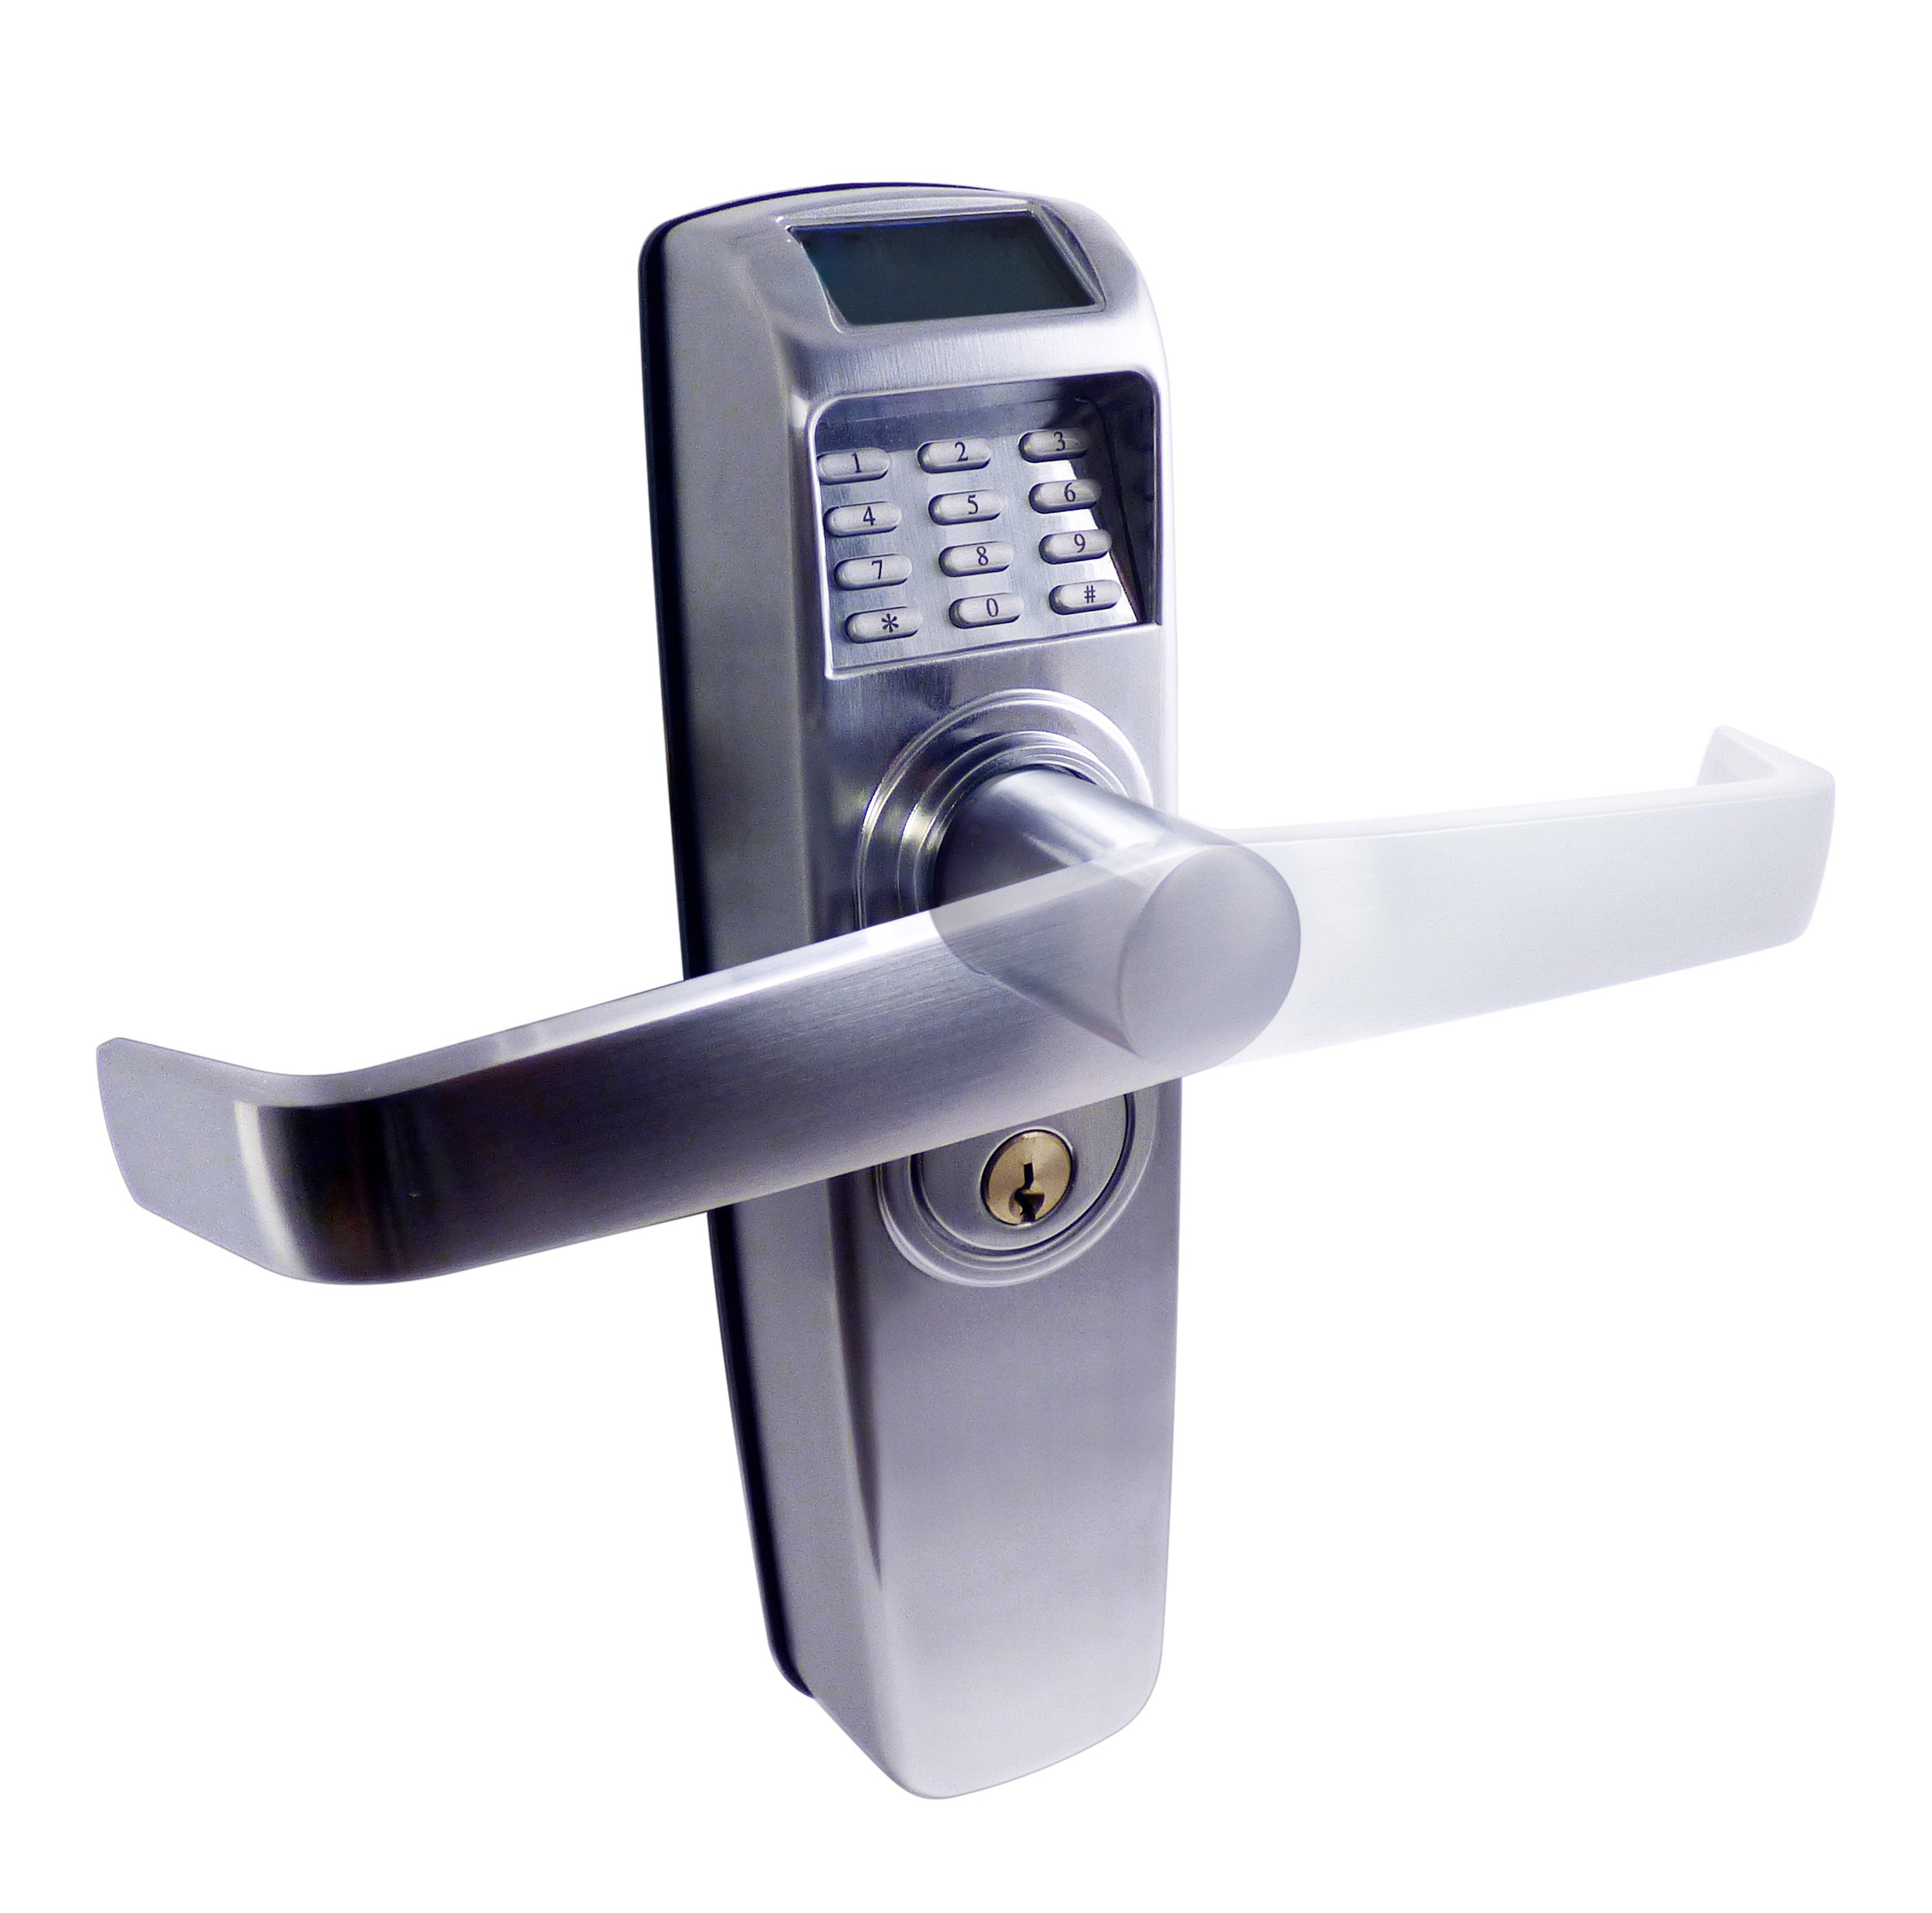 Westinghouse RTS-PZ PIN Code Lock, Z-Wave Accessible